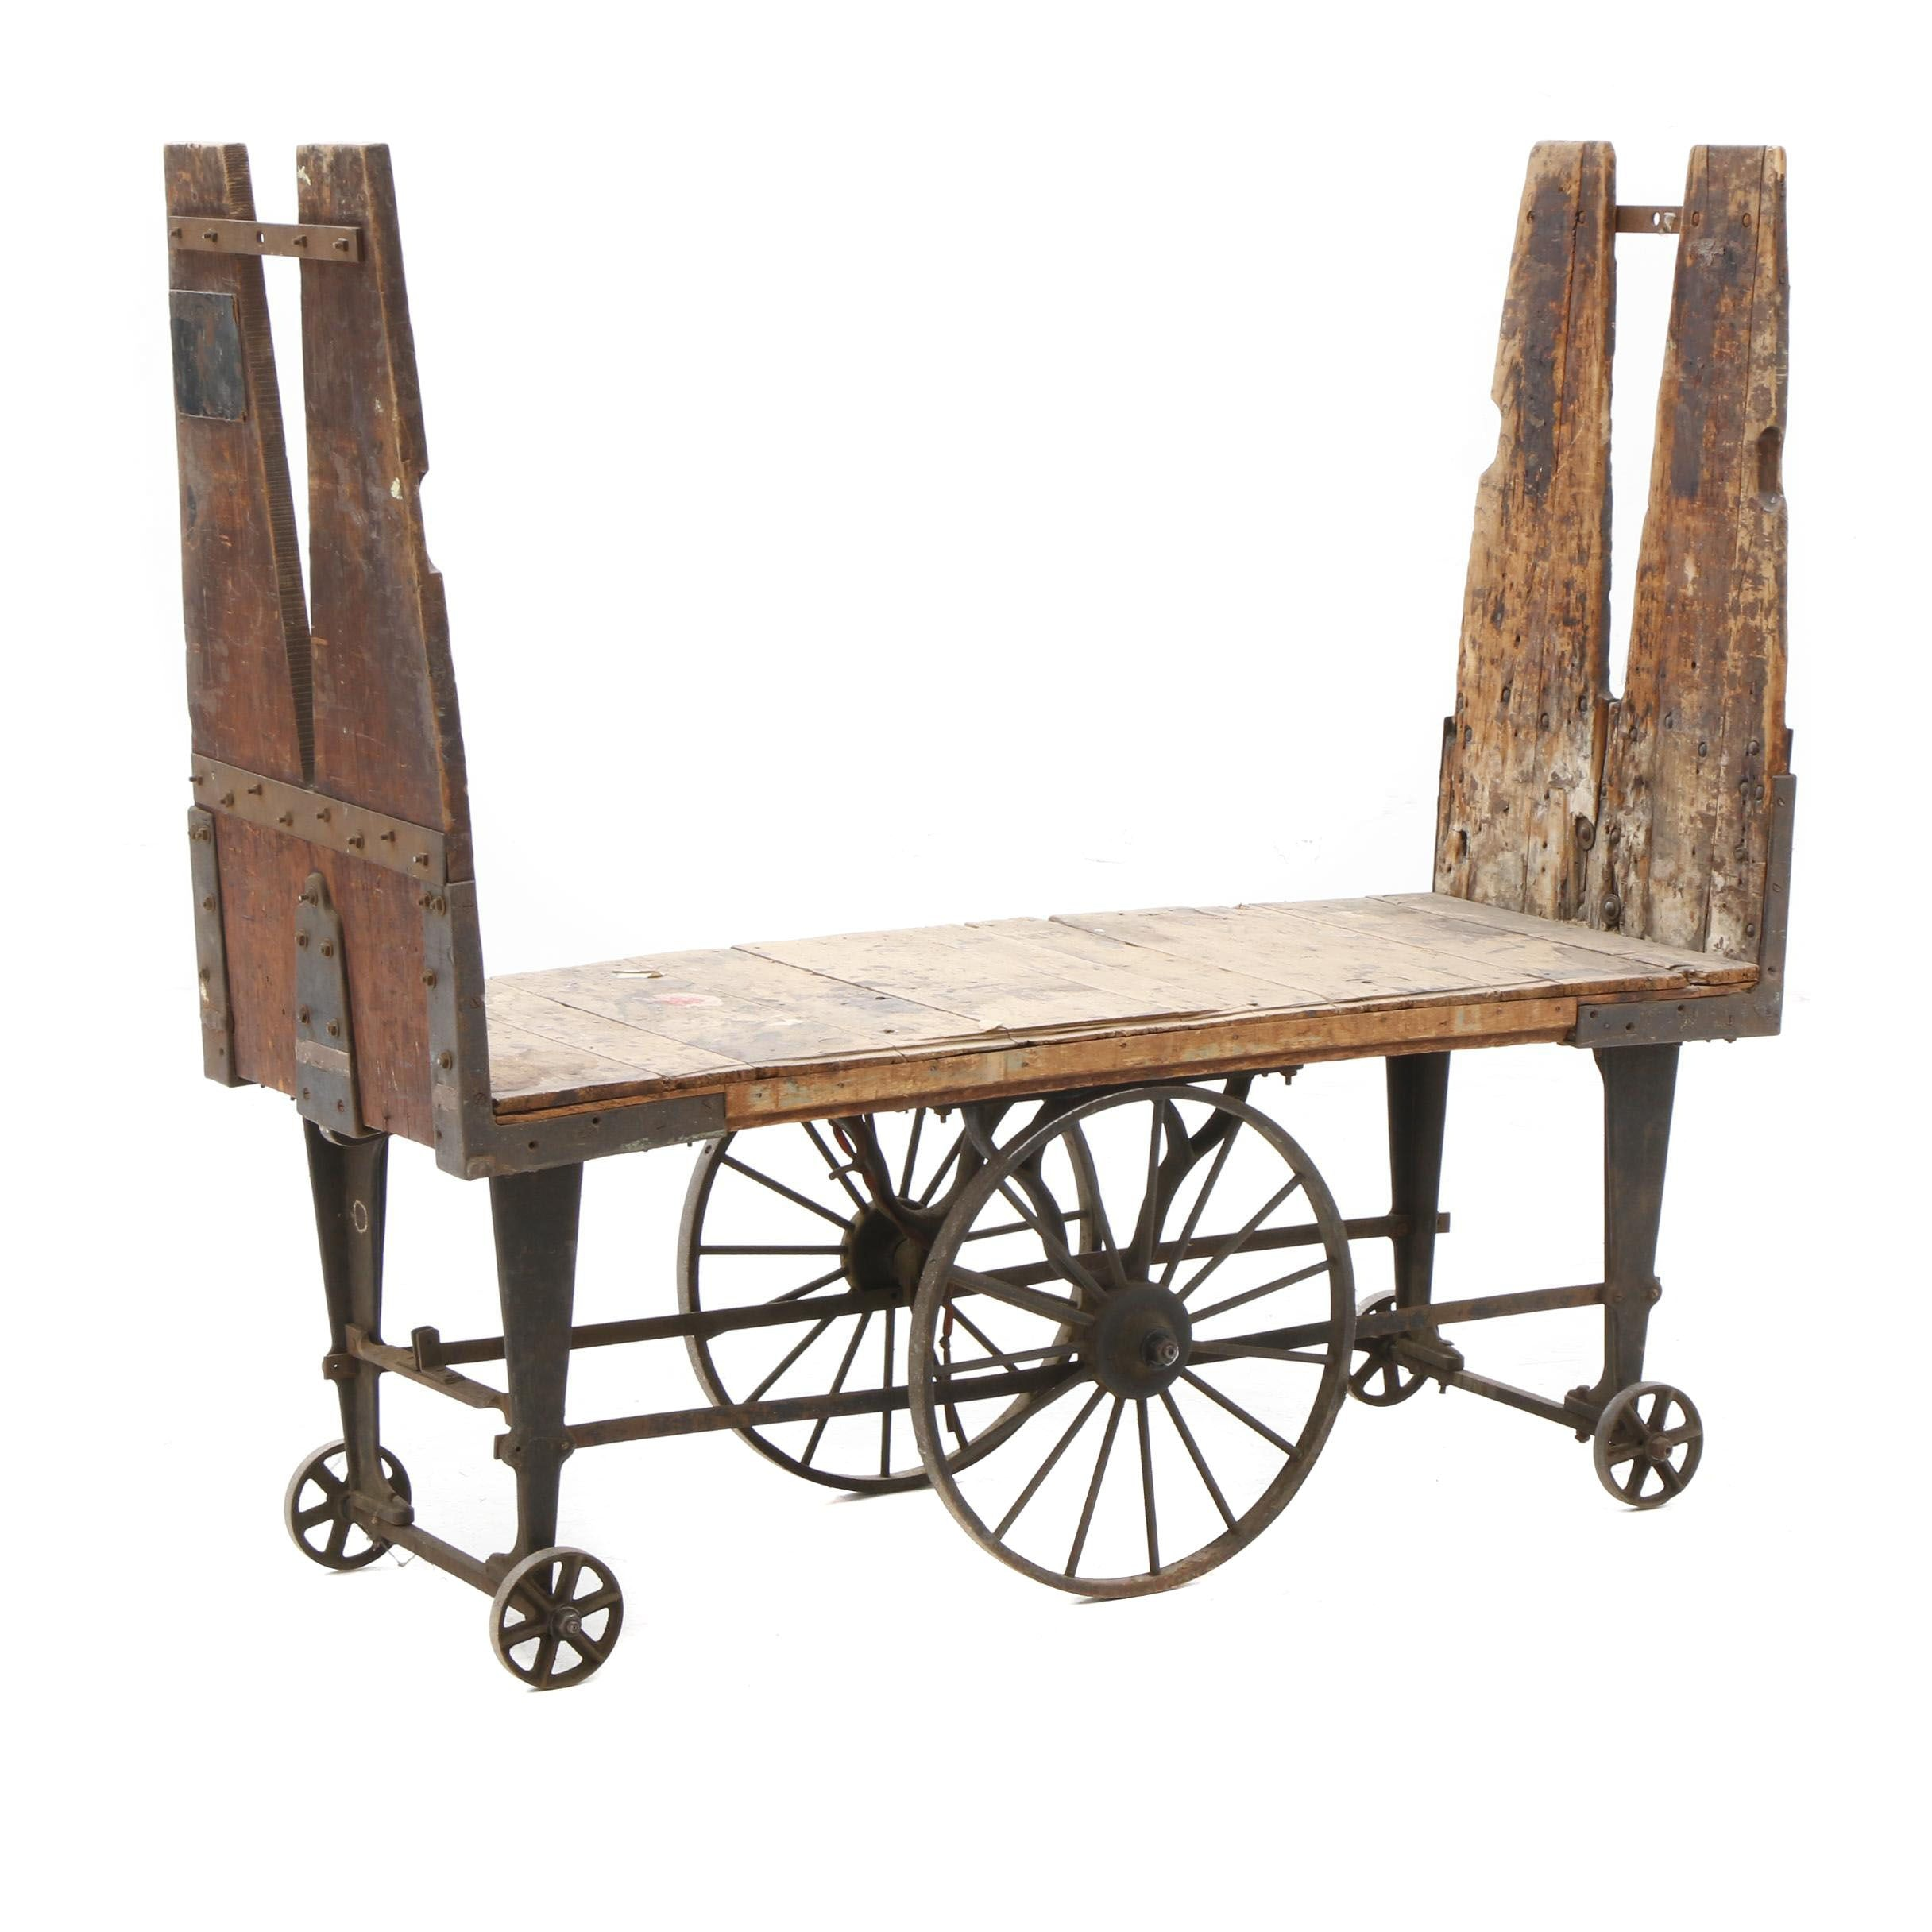 Early 1900s Pine Industrial Rolling Cart